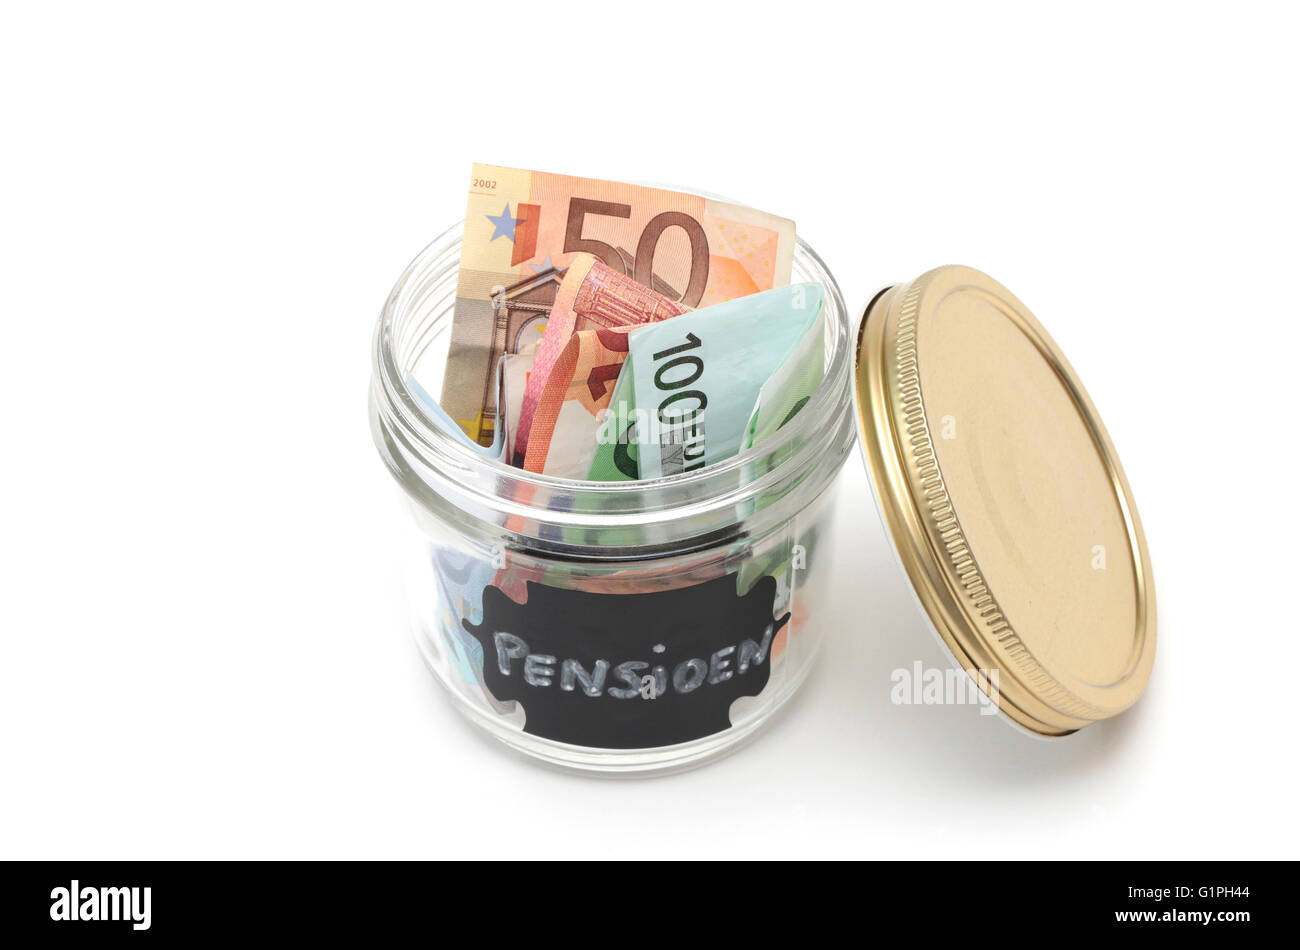 A jar filled with money with the dutch word for pension written on the label - Stock Image